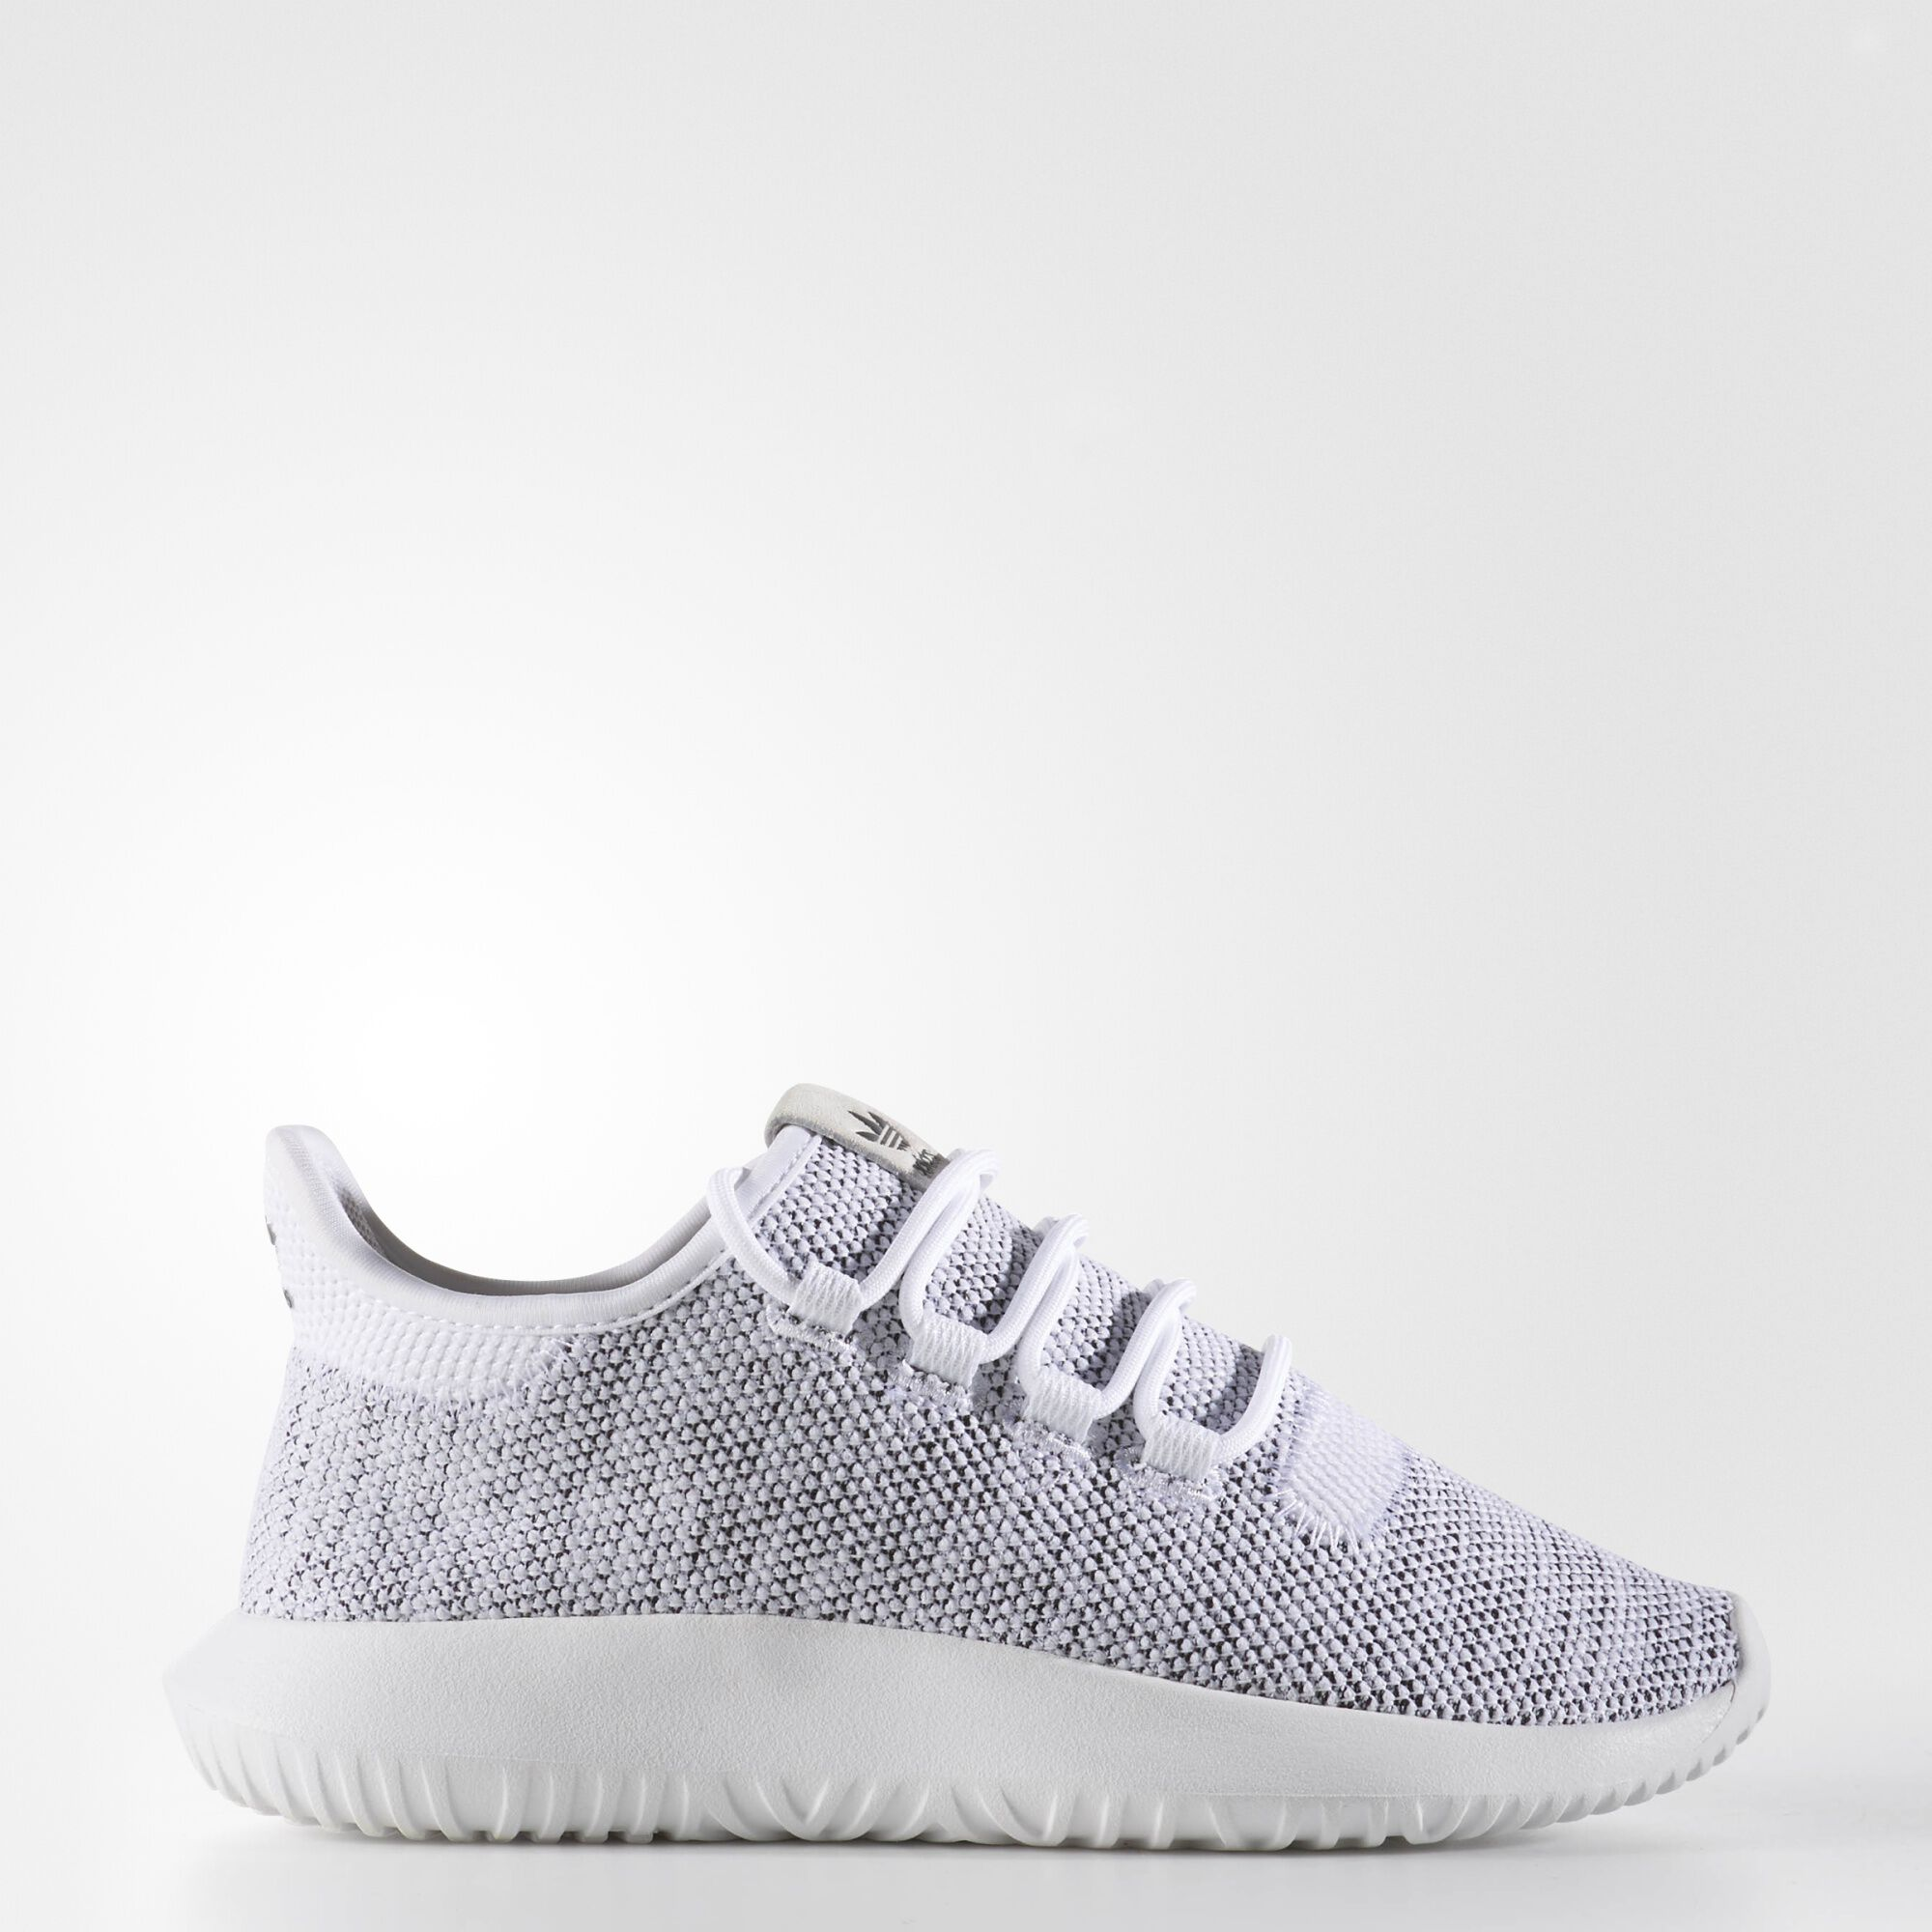 Adidas Women 's Tubular Shadow W (Haze Coral) End